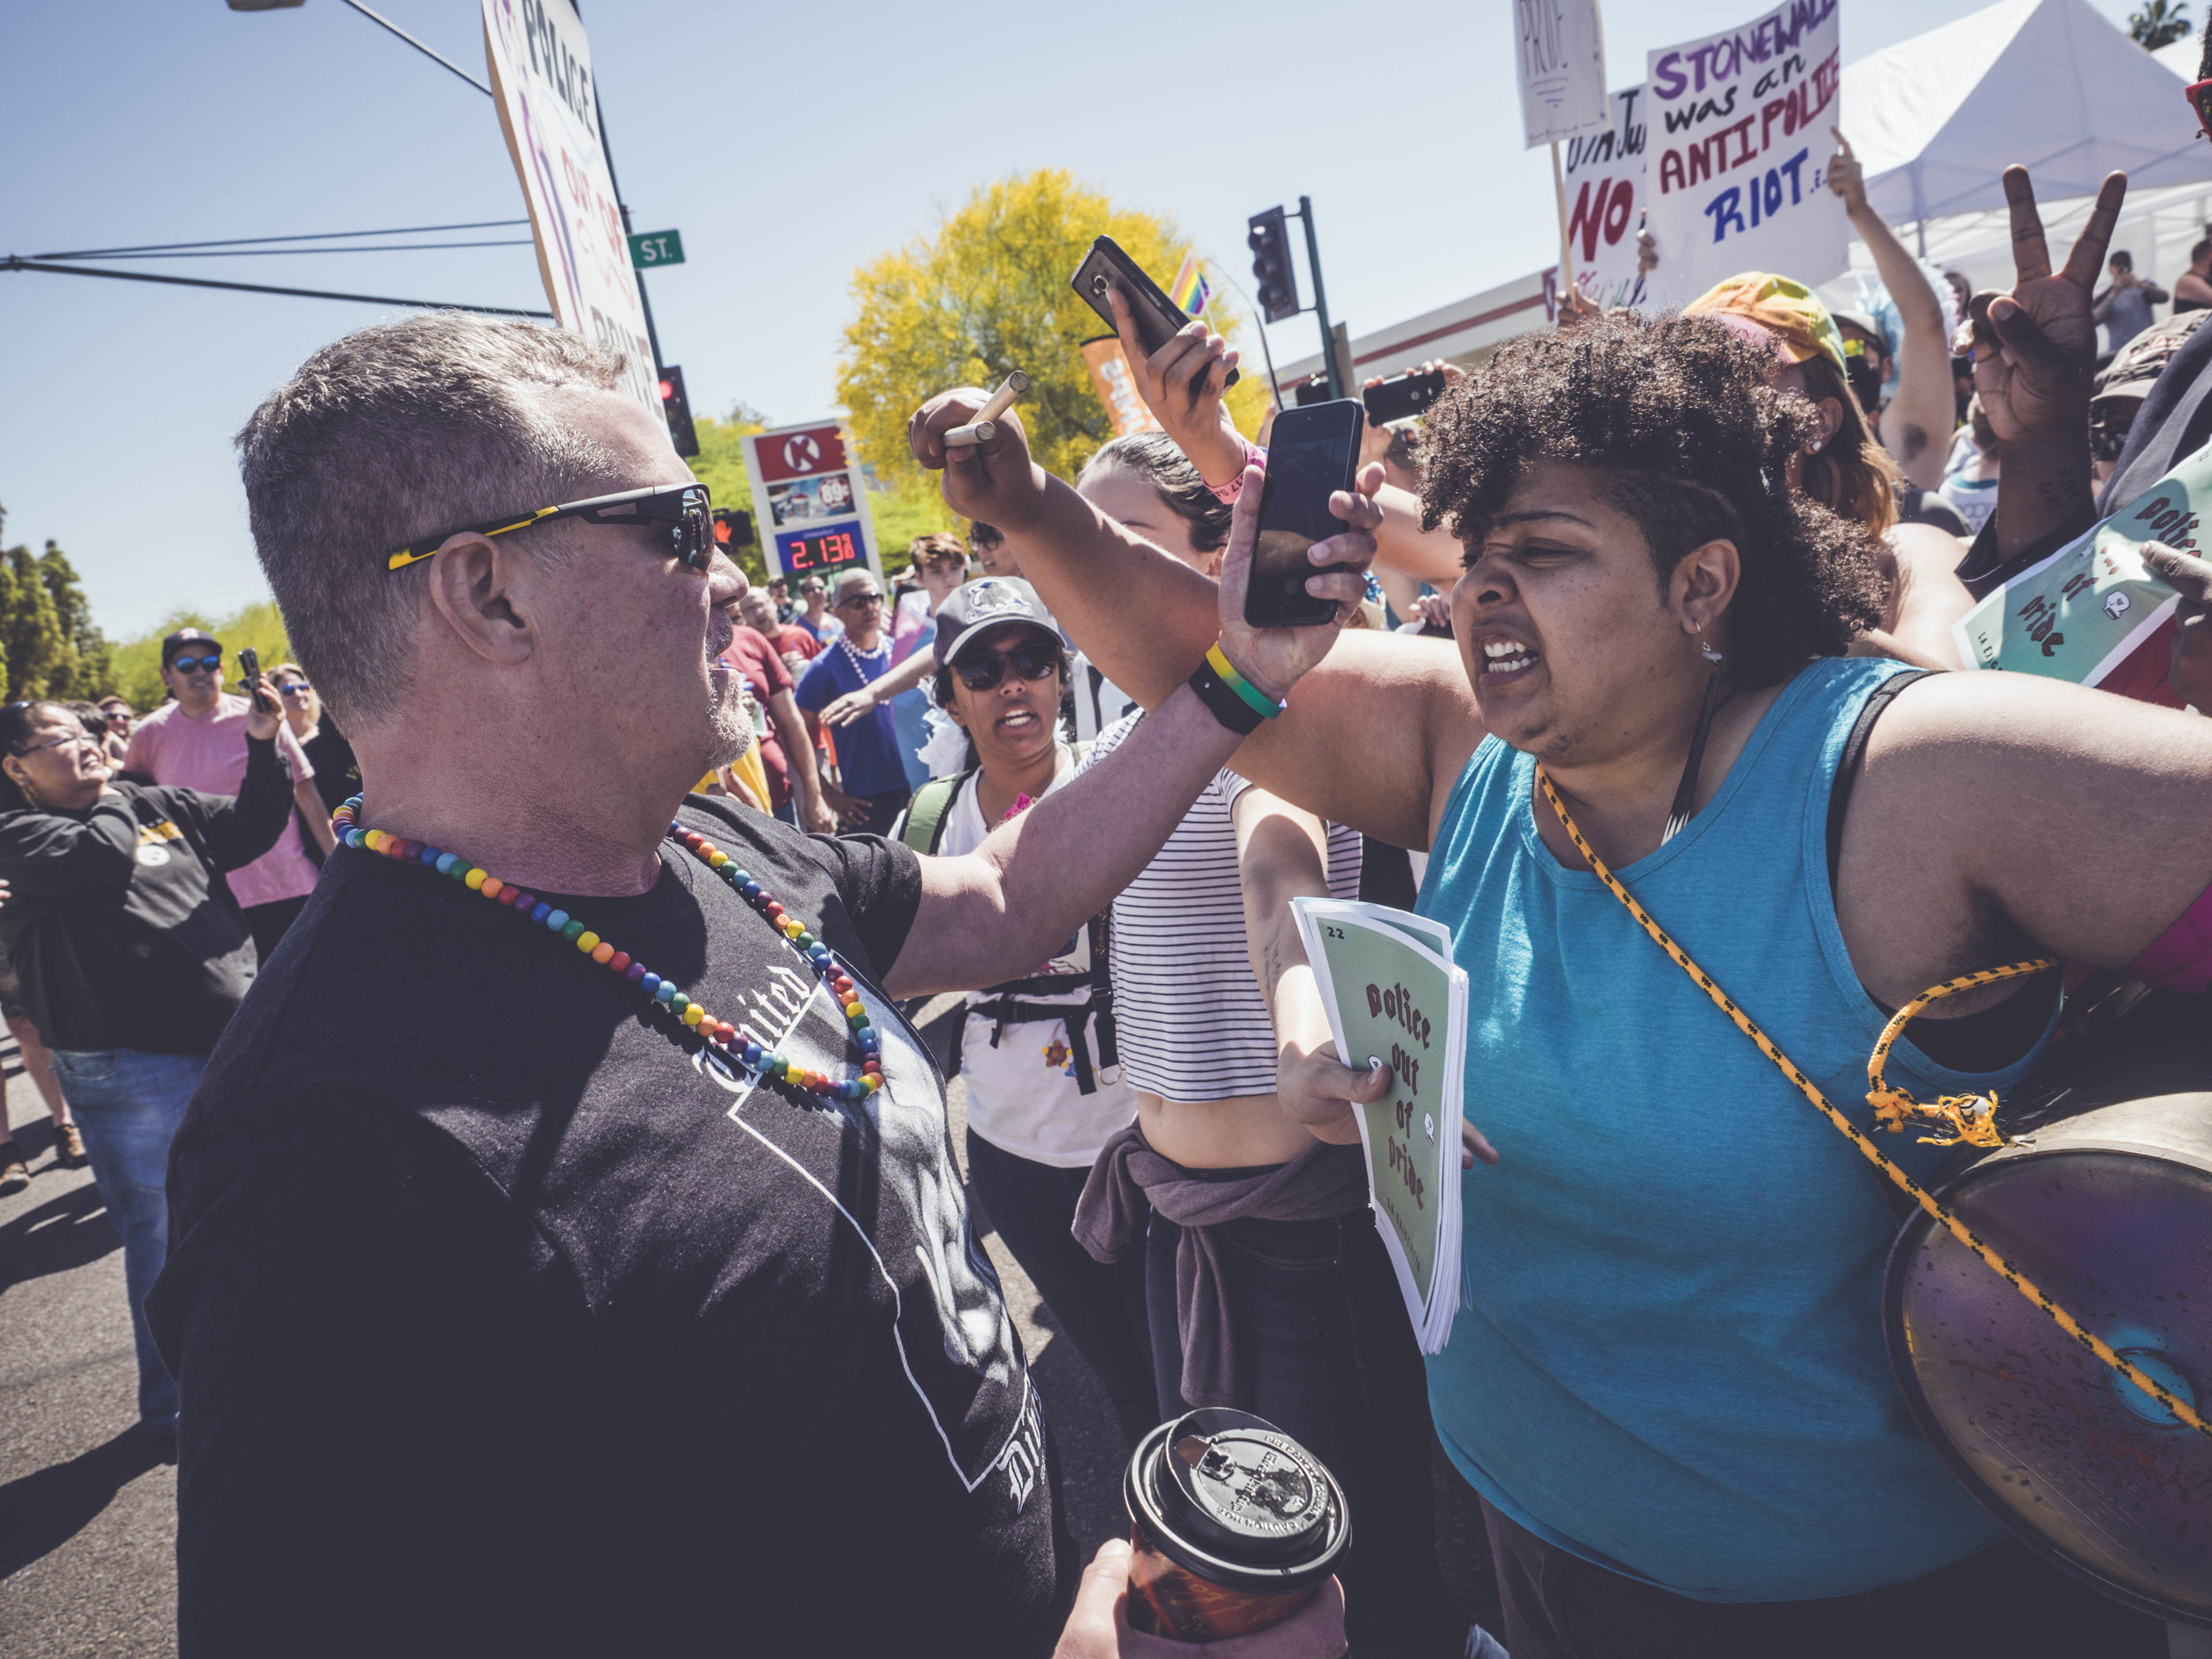 TPQ at white Pride parade_1025.jpg